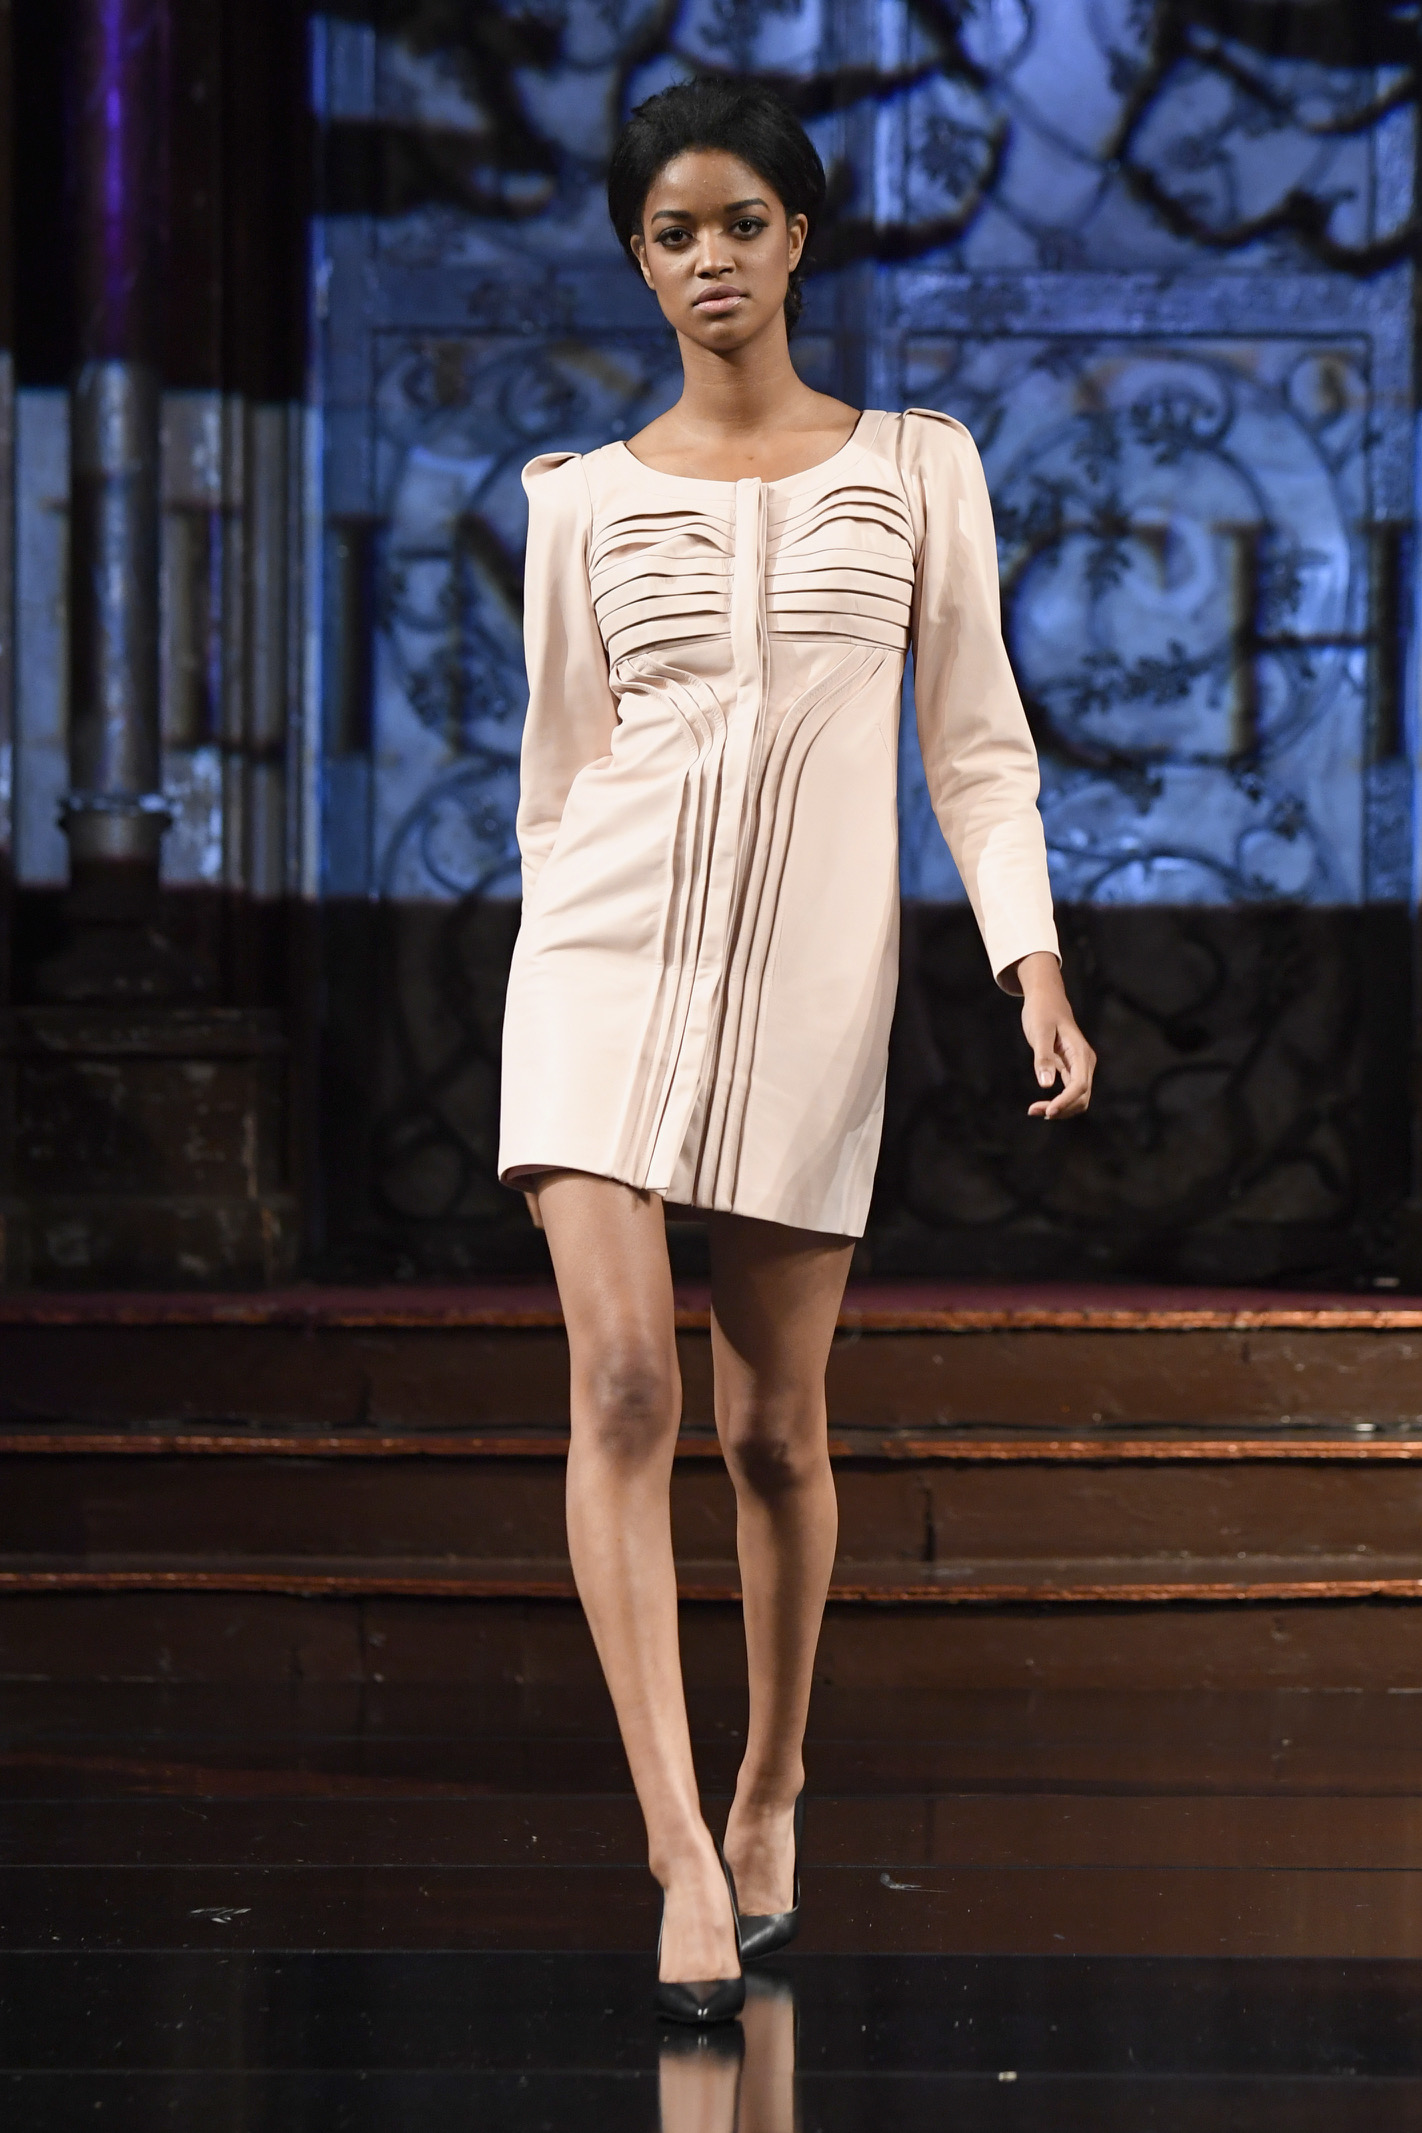 WEILING CHANG at New York Fashion Week Powered by Art Hearts Fashion NYFW